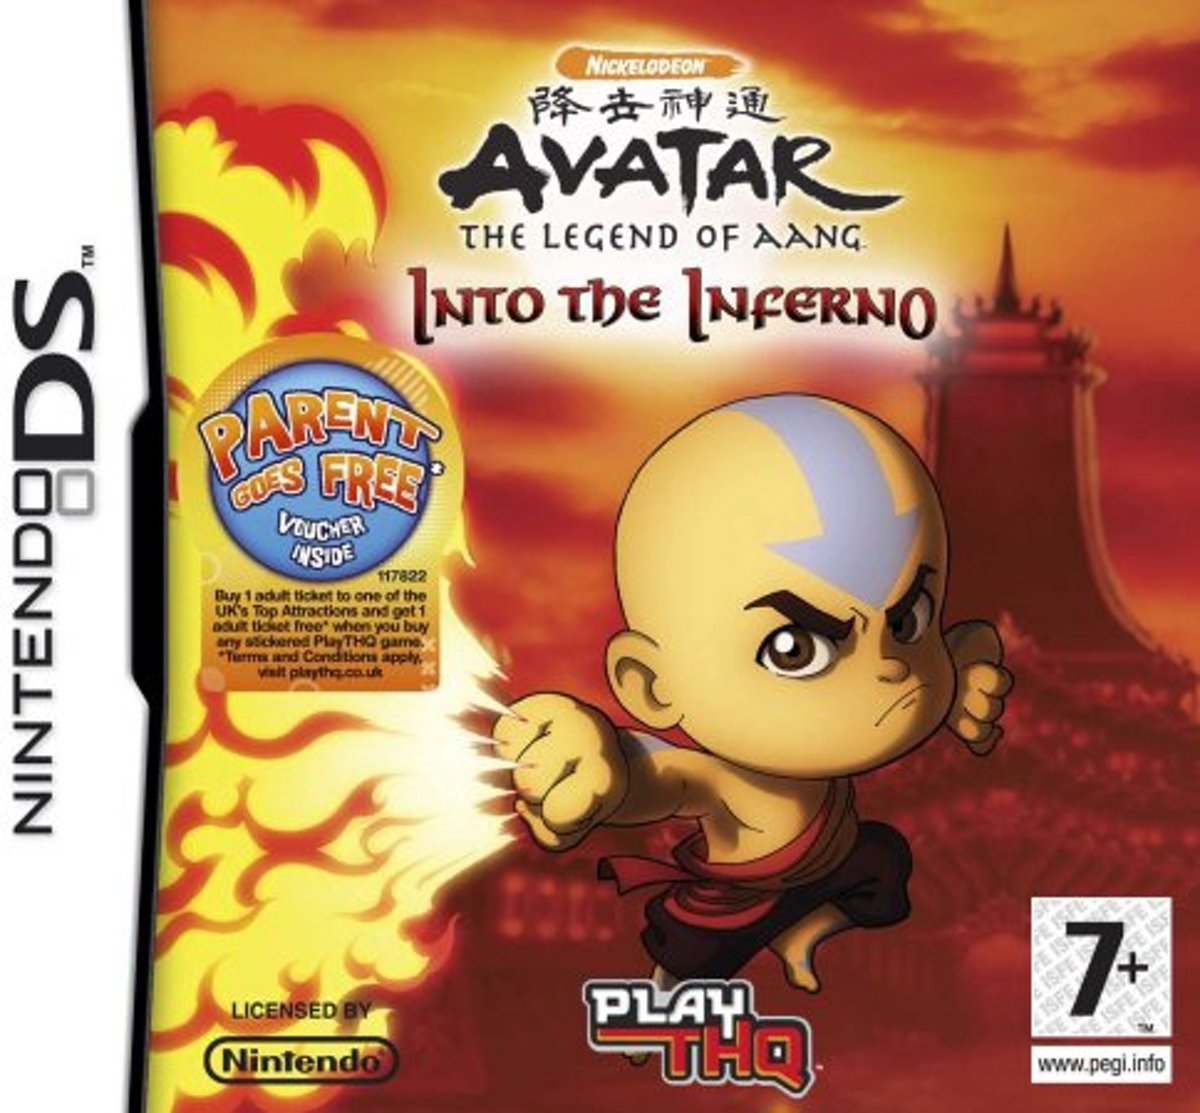 Avatar legend of Aang Into the Inferno /NDS